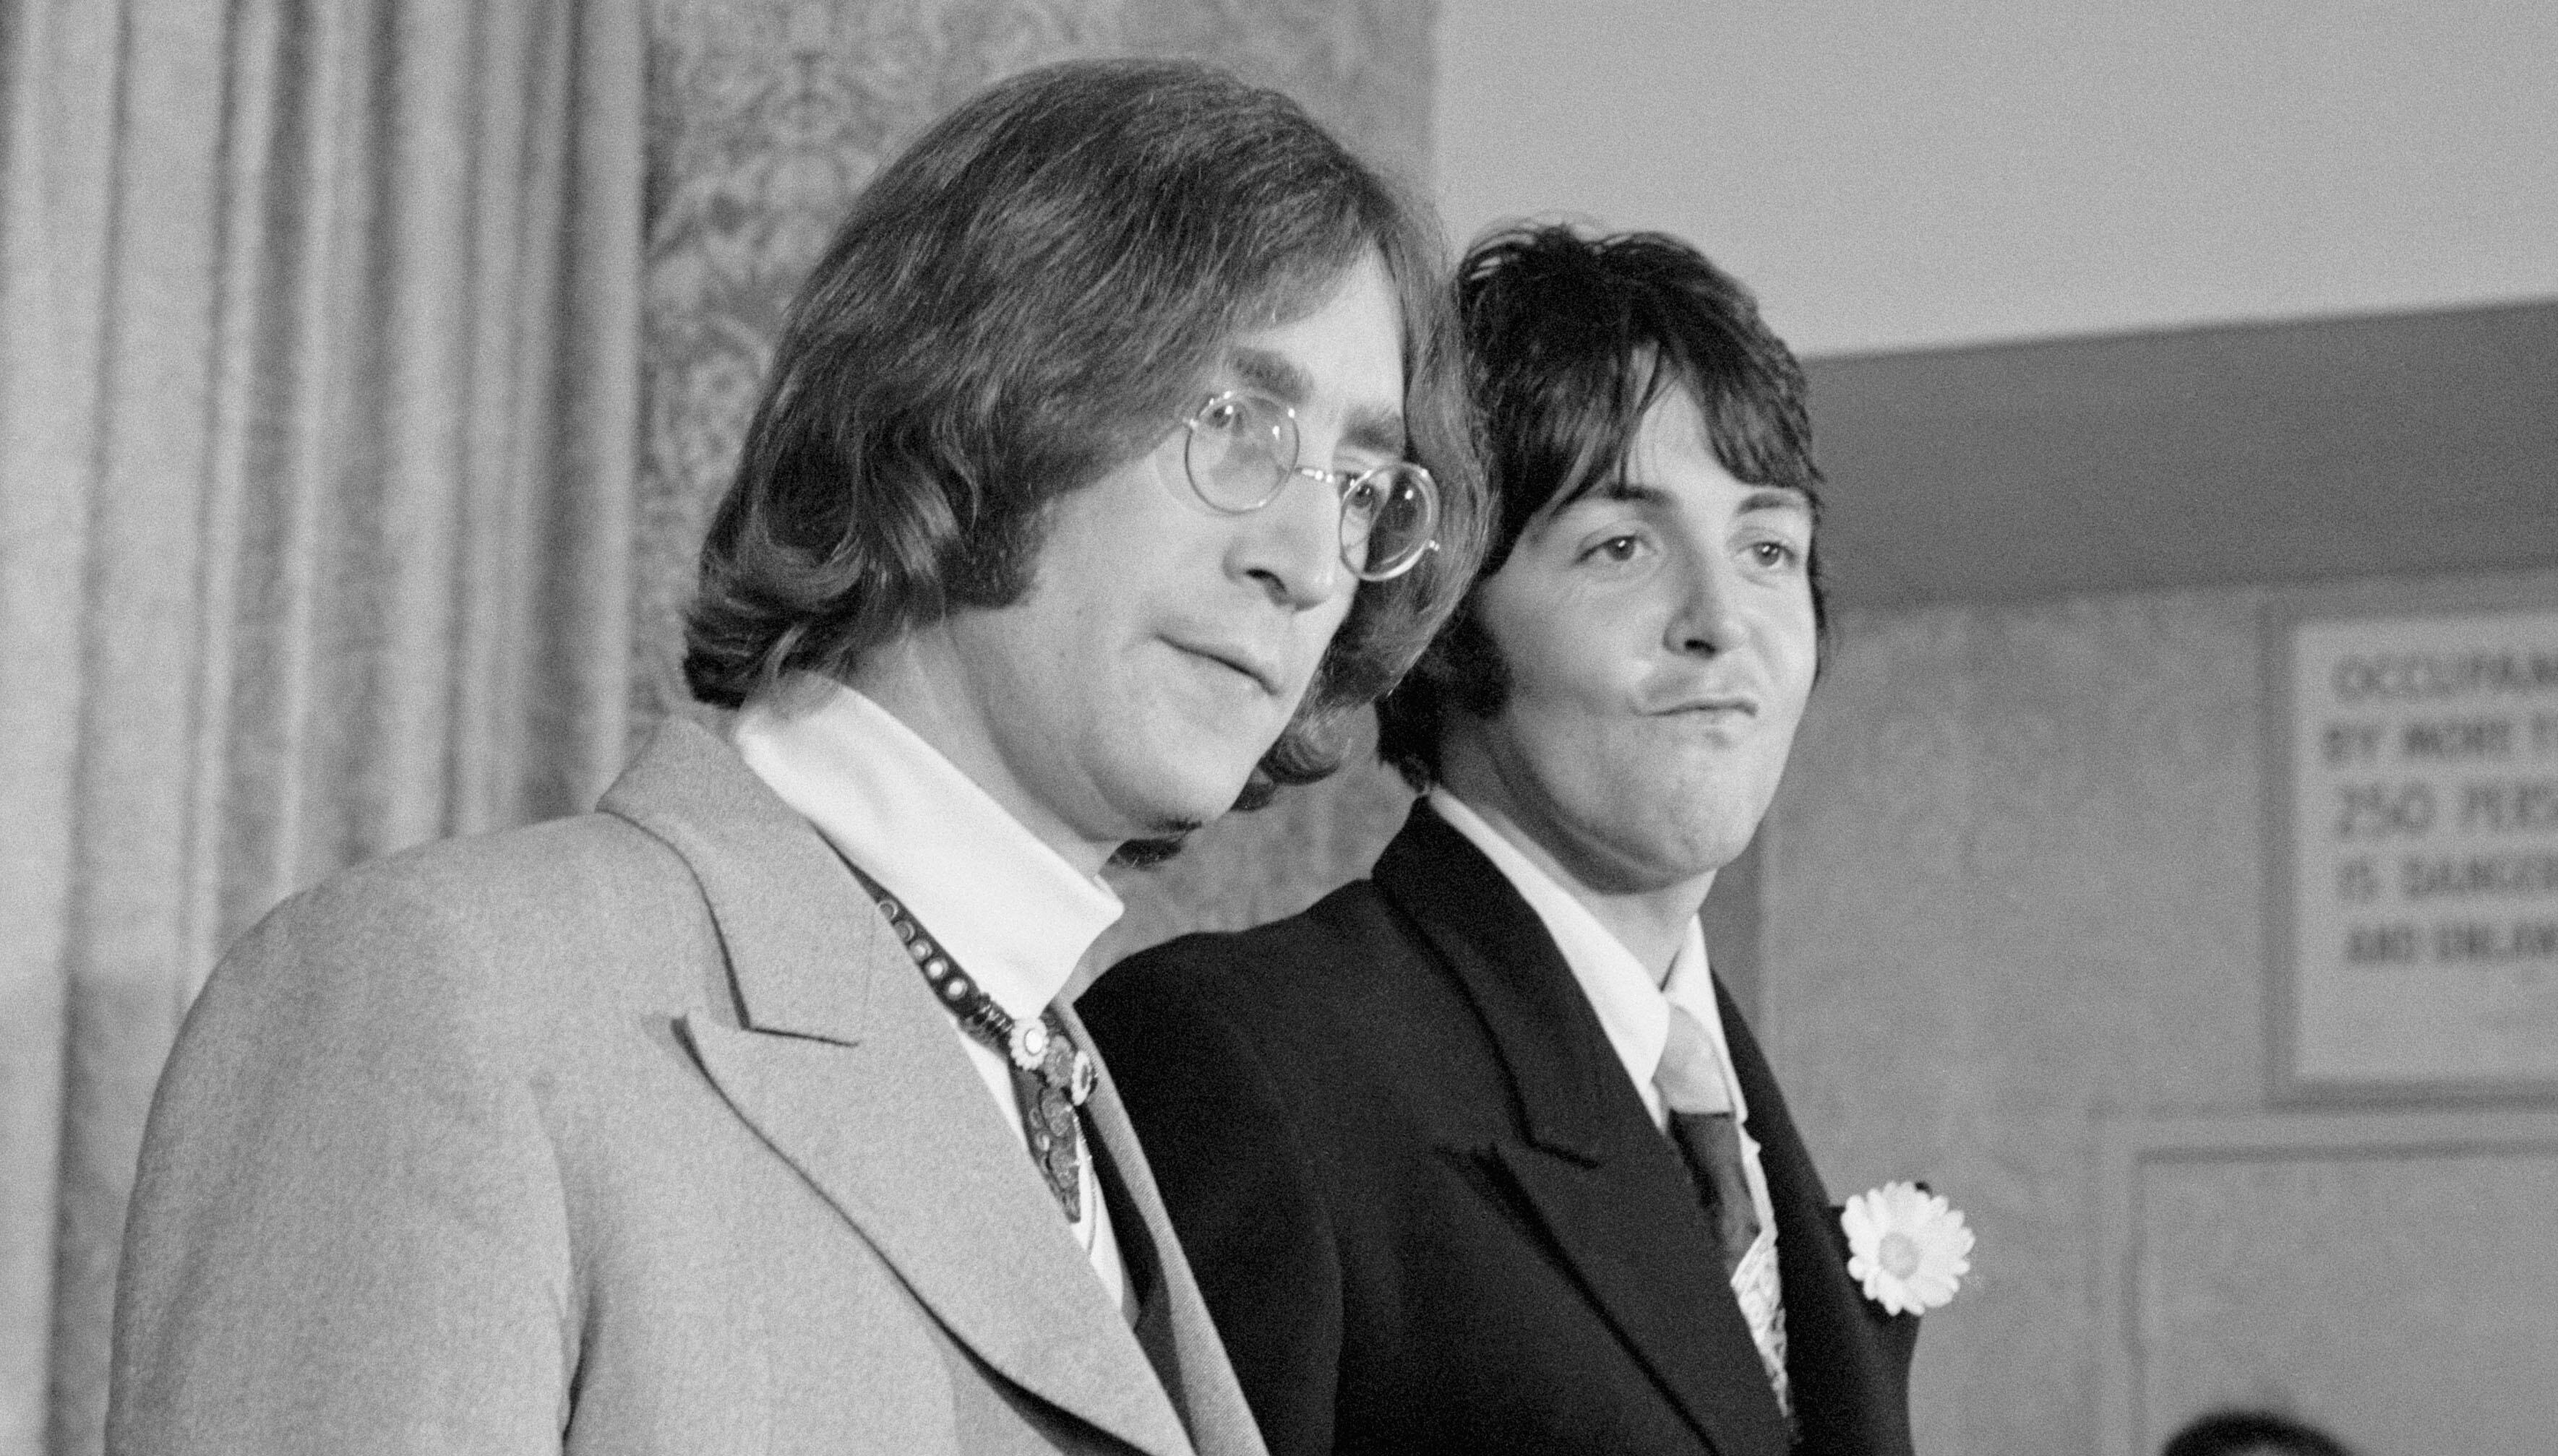 Paul McCartney Revisits First Lennon-McCartney Song In Upcoming BBC Special